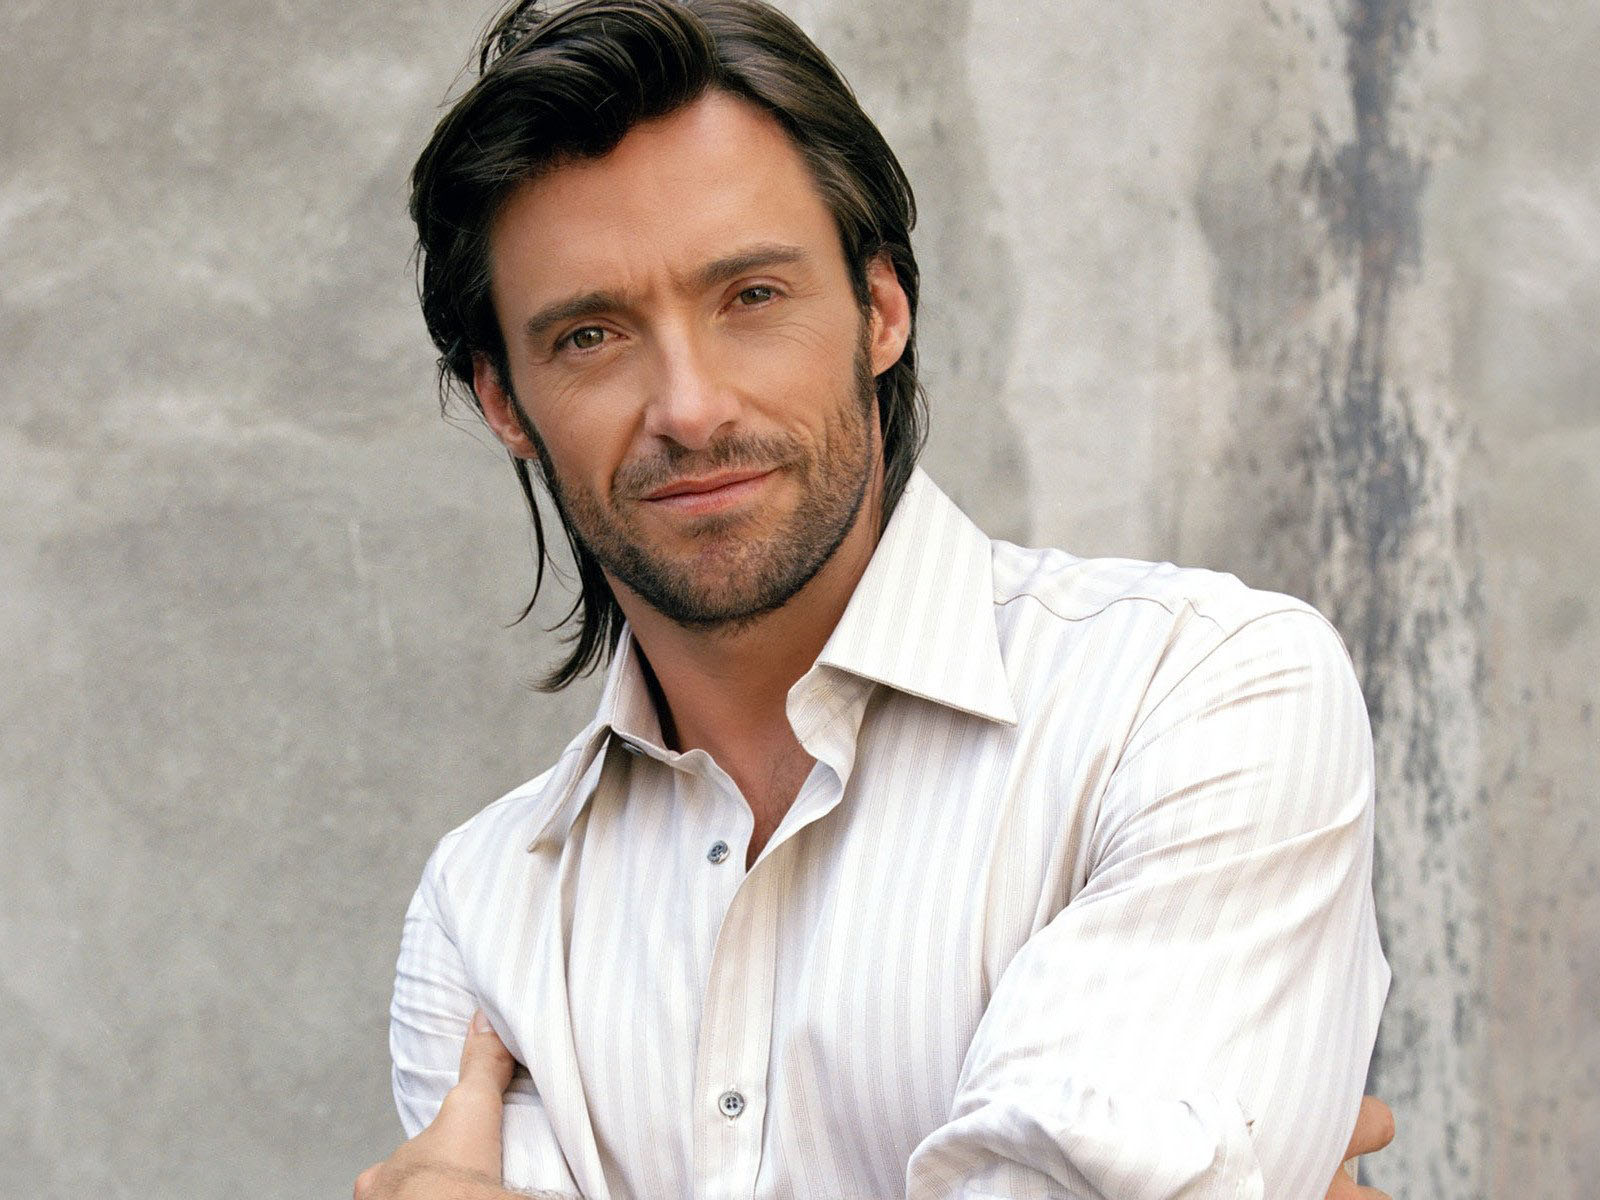 hollywood actor wallpaper picture - photo #2